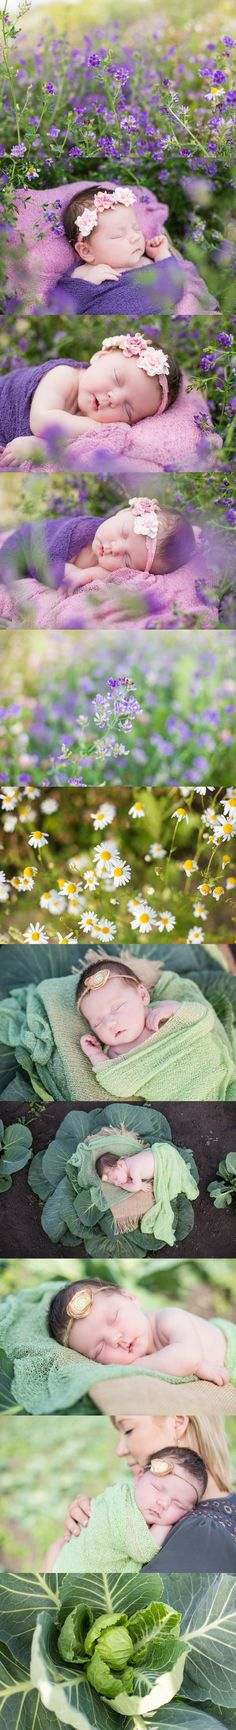 Melanie Bennett Photography|Newborn Photography   Outdoor Newborn Photography| Evoking You| Wildflowers| Cabbage Patch| Baby Girl